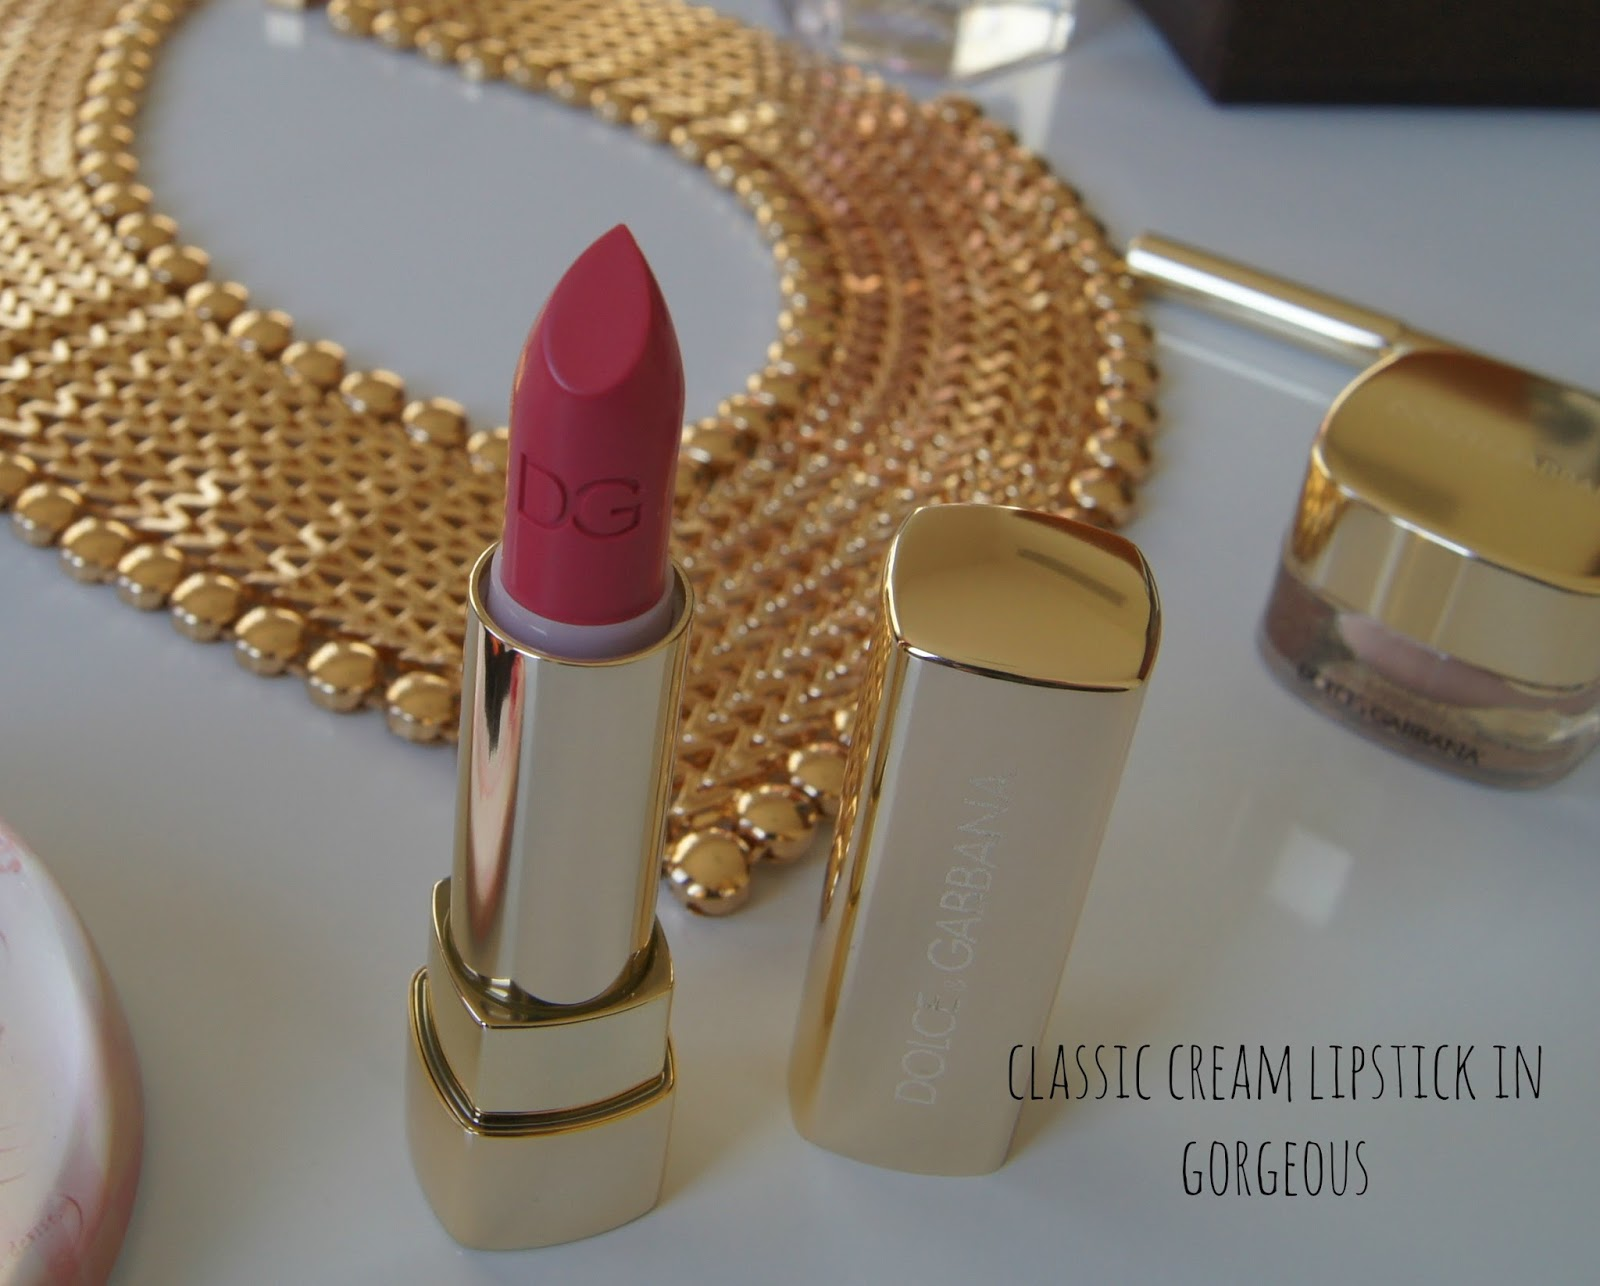 Dolce and Gabbana classic cream lipstick in Gorgeous